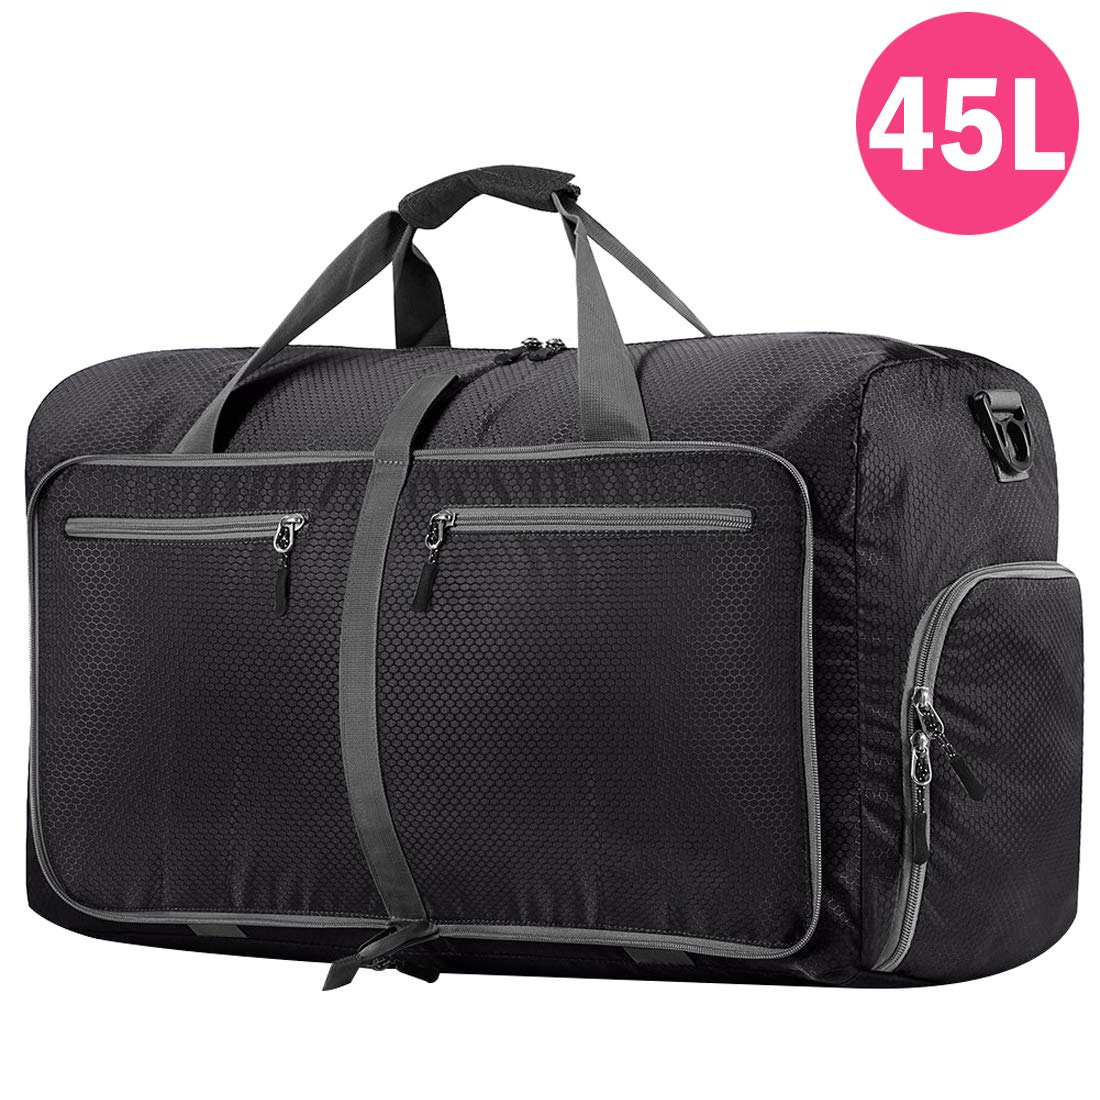 Packable Travel Holdalls To Fold Away For Spare Or Extra Holiday Bags Foldaway Hand Luggage Holdall Bag 40 Litre Capacity Folds Into Own Pouch Cabin Baggage Size 55cm x 36cm x 20cm RL9422K